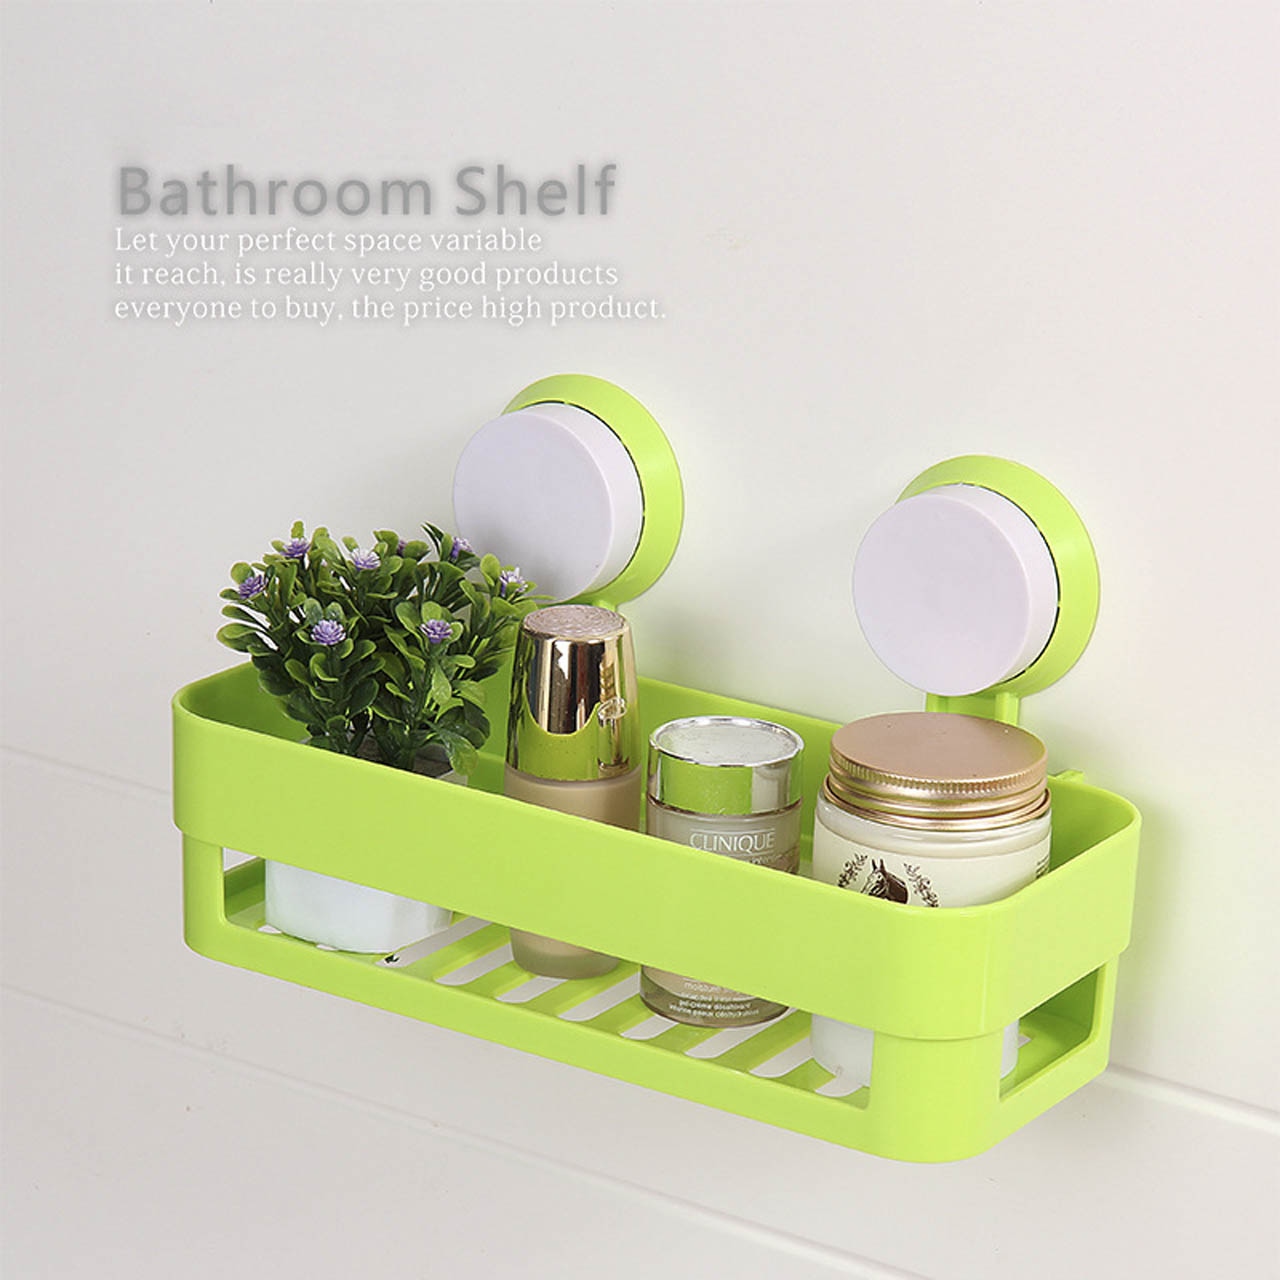 2016 hot sale wall shelf bathroom accessories multipurpose kitchen storage holder bathroom shelf for bathroom 99 - Multi Bathroom 2016